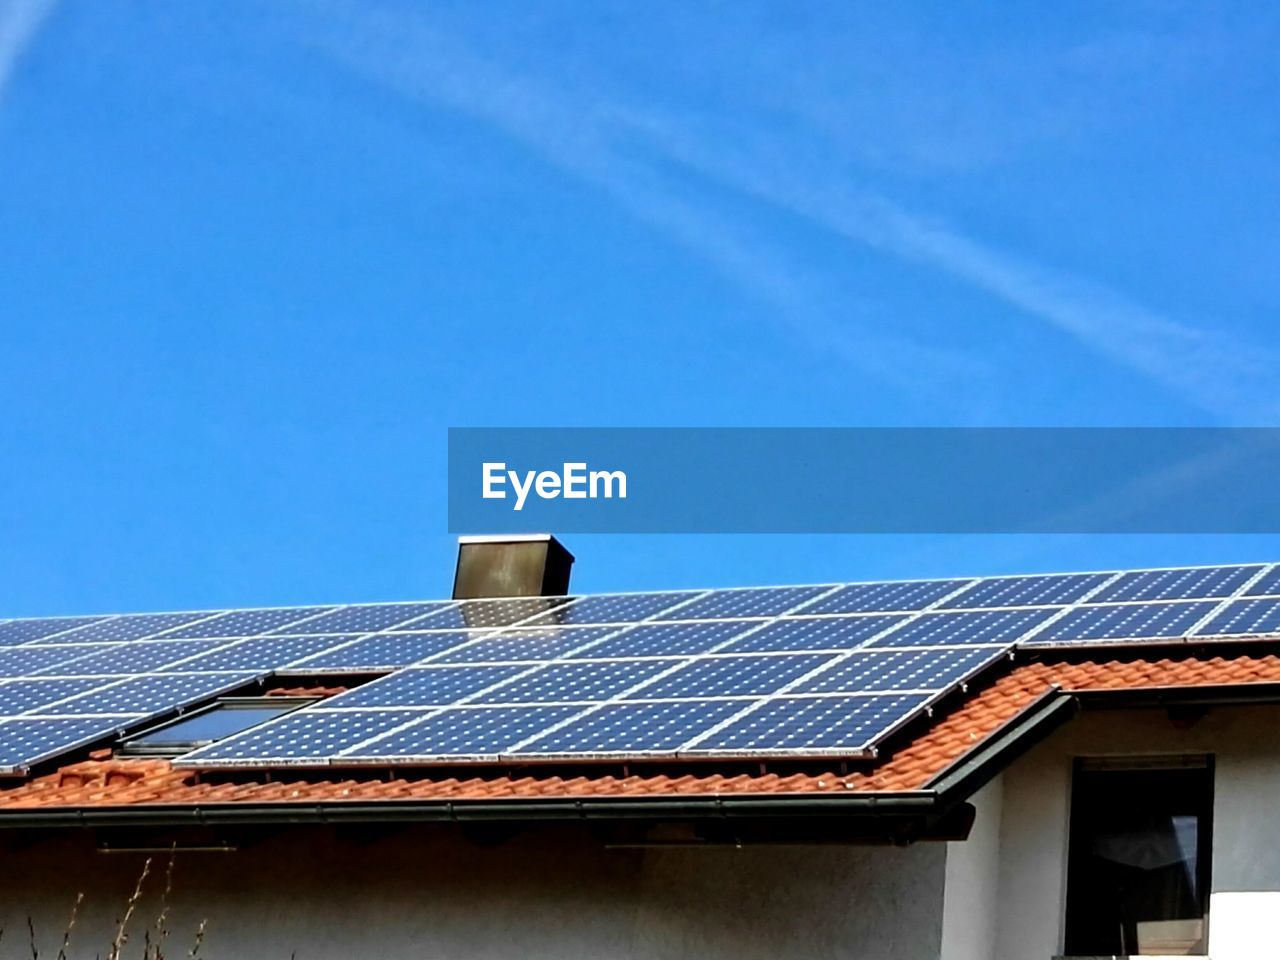 solar panel, solar energy, environmental conservation, fuel and power generation, alternative energy, roof, built structure, architecture, blue, no people, day, solar equipment, building exterior, technology, outdoors, clear sky, sky